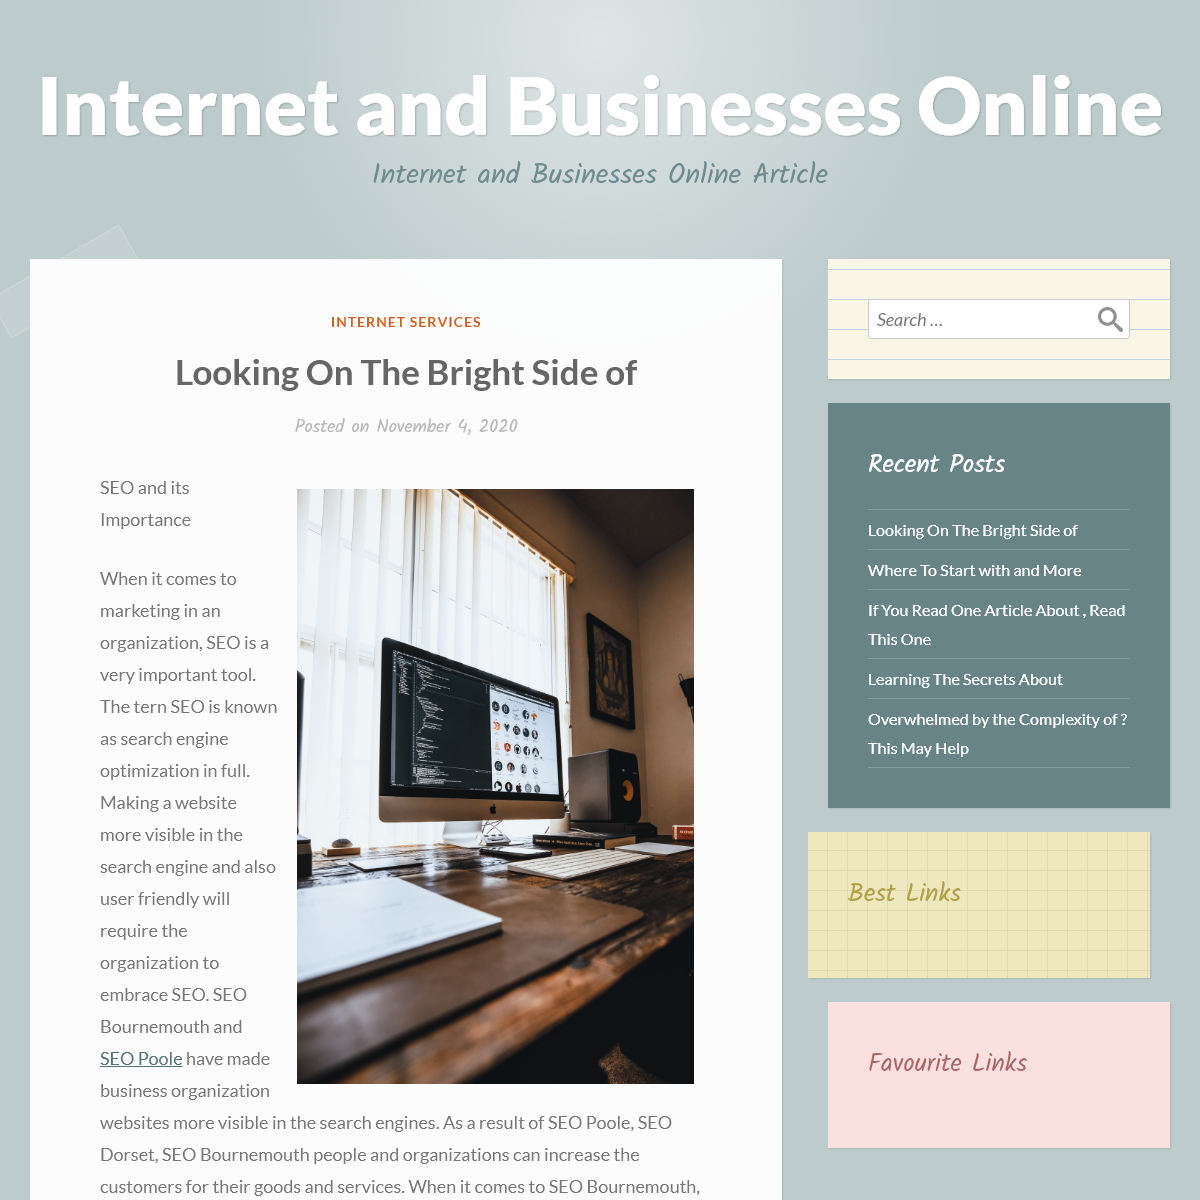 Internet and Businesses Online – Internet and Businesses Online Article